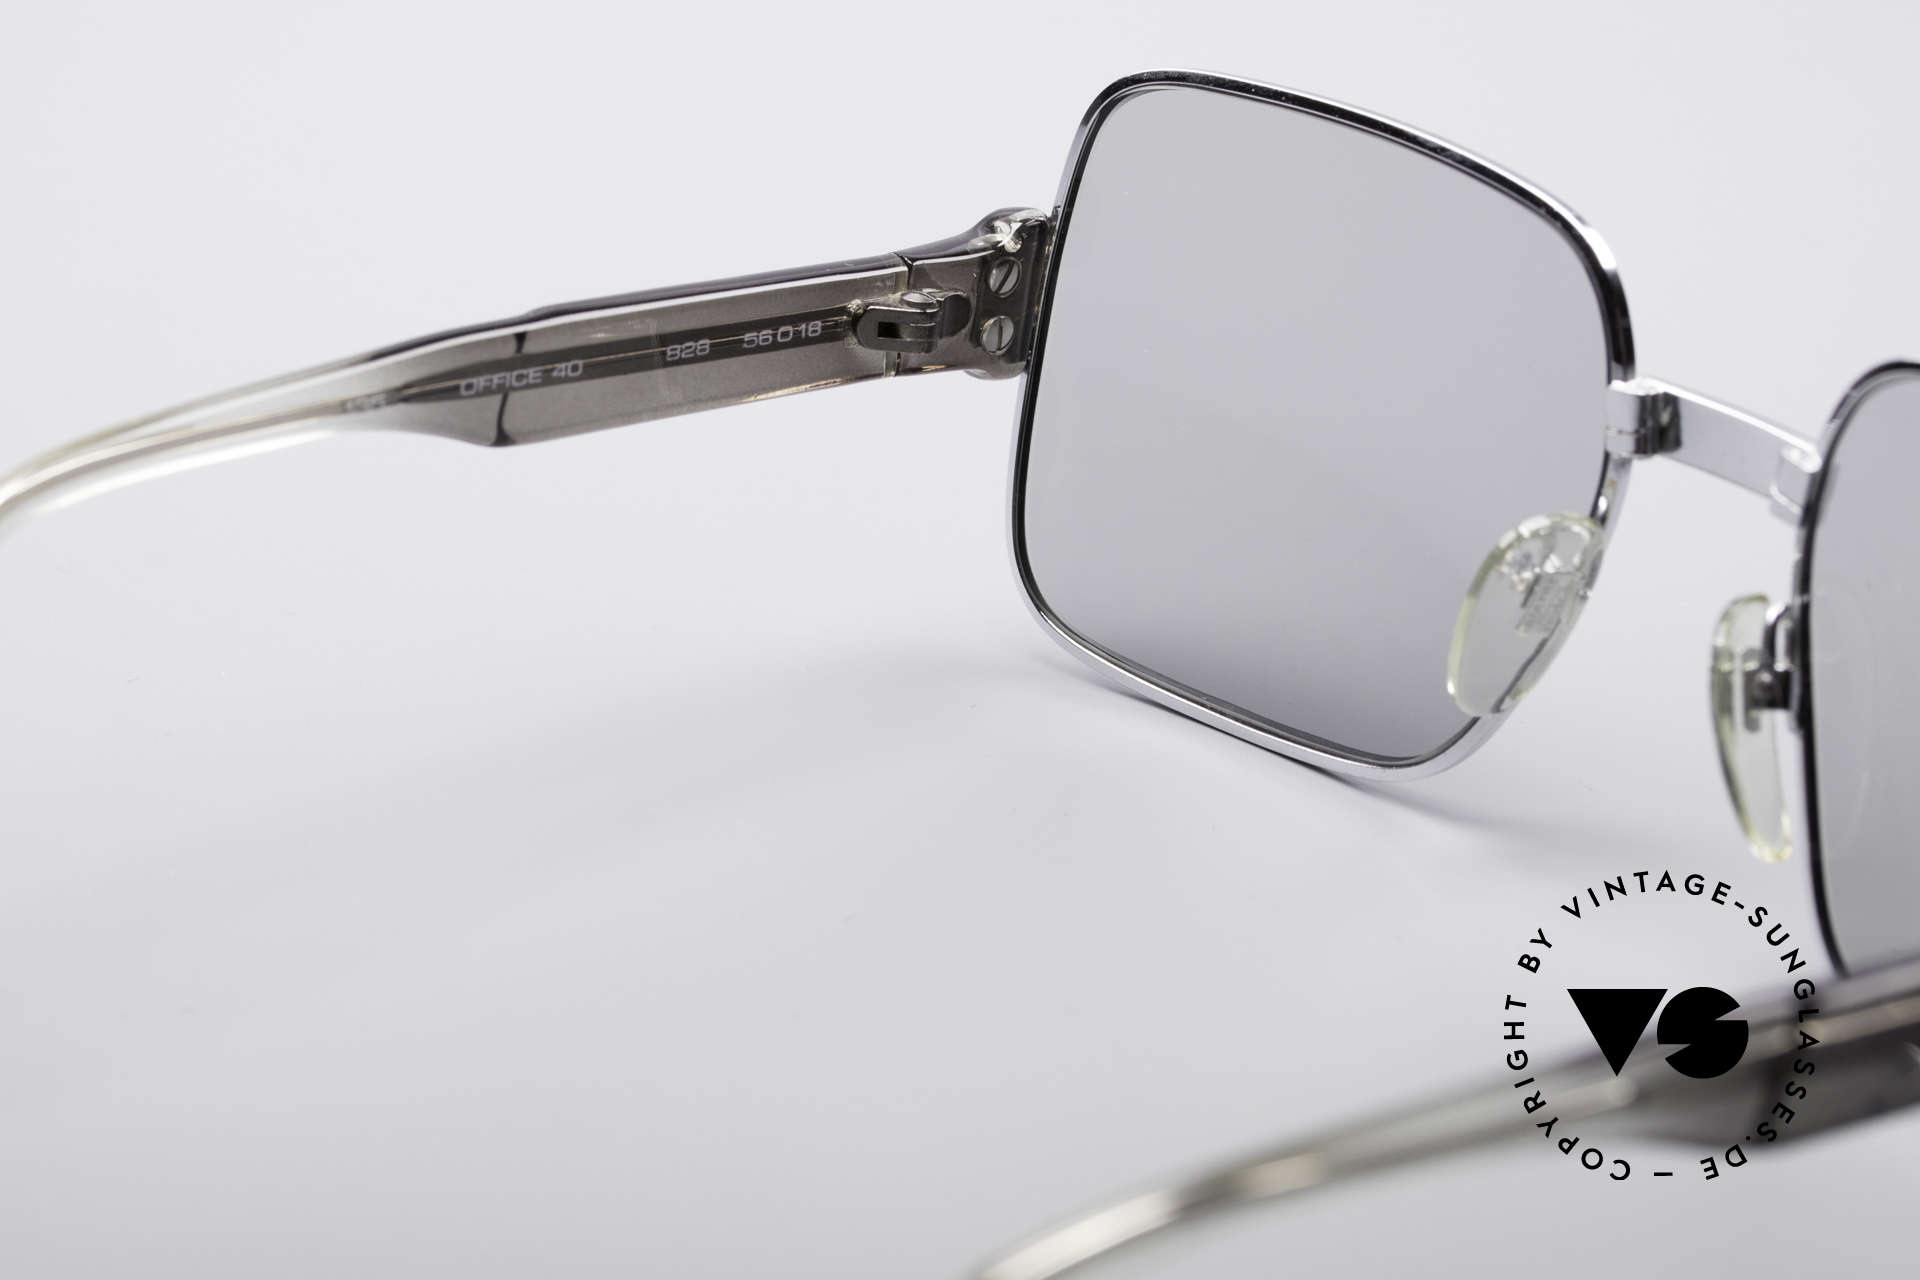 Neostyle Office 40 Old School Sunglasses, unworn (like all our vintage Neostyle sunglasses), Made for Men